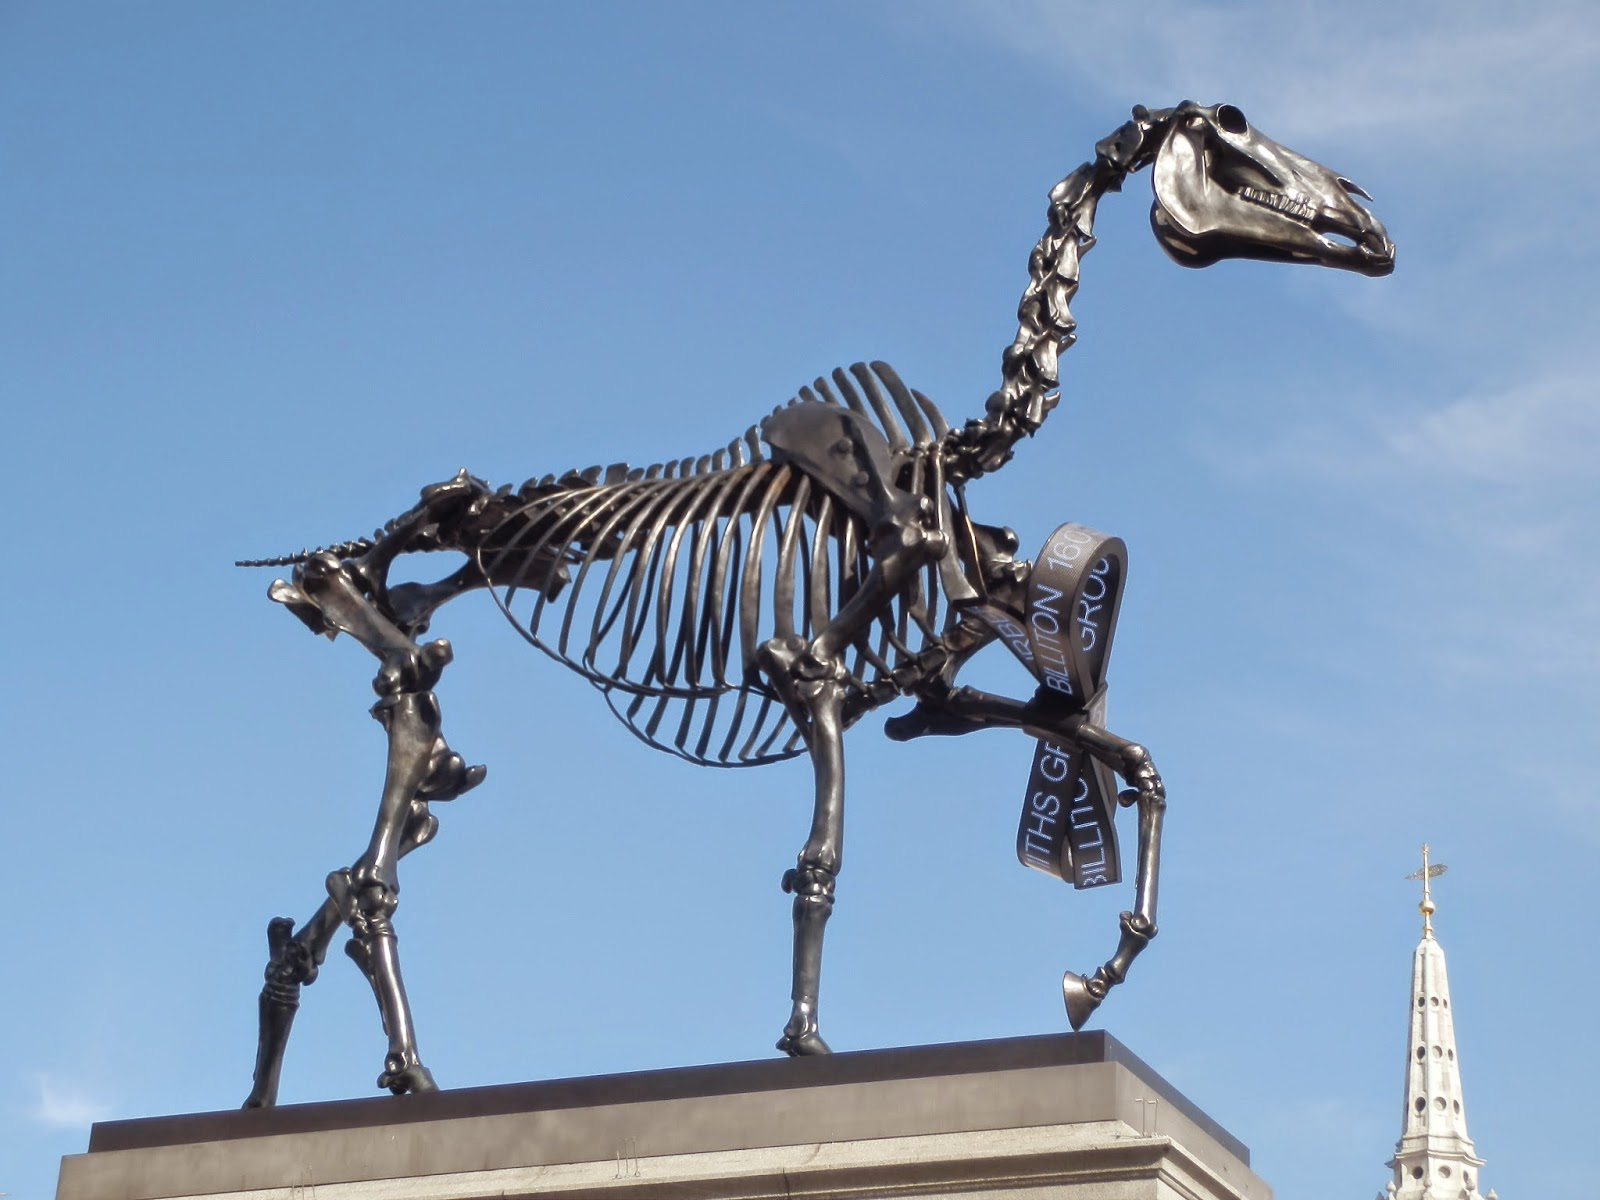 Joseph scissorhands hans haacke gift horse gift horse depicts the bronze skeleton of a horse with a bow tied around its foreleg the bow has live scrolling information from the london stock exchange negle Images